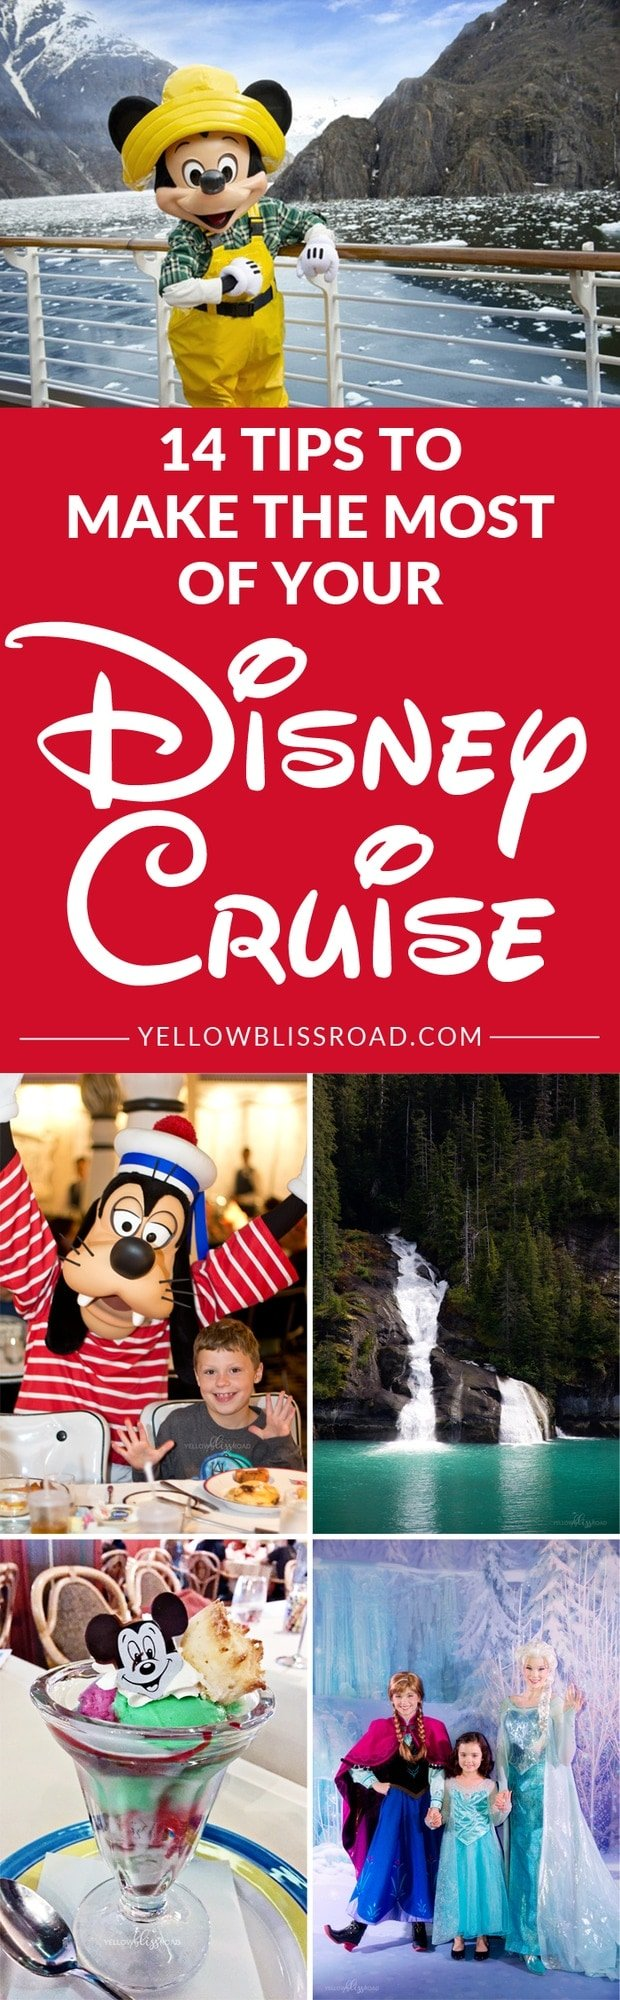 Tips For A Magical Disney Cruise Yellow Bliss Road - 9 tips for visiting alaska